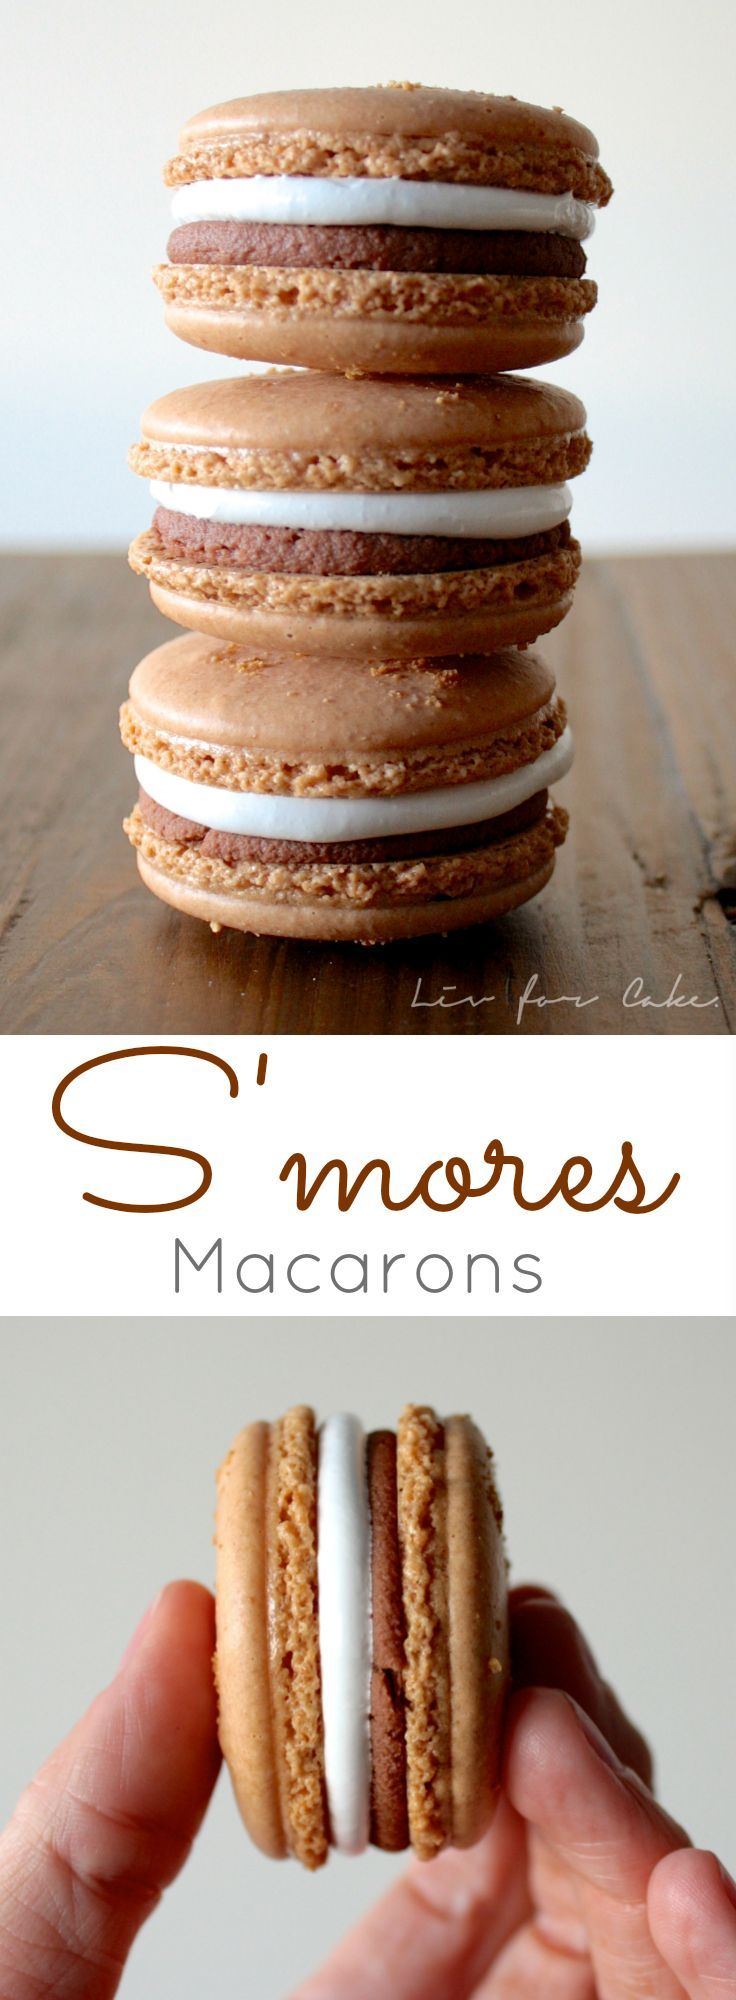 These s'mores macarons will satisfy your craving when there isn't a campfire nearby.